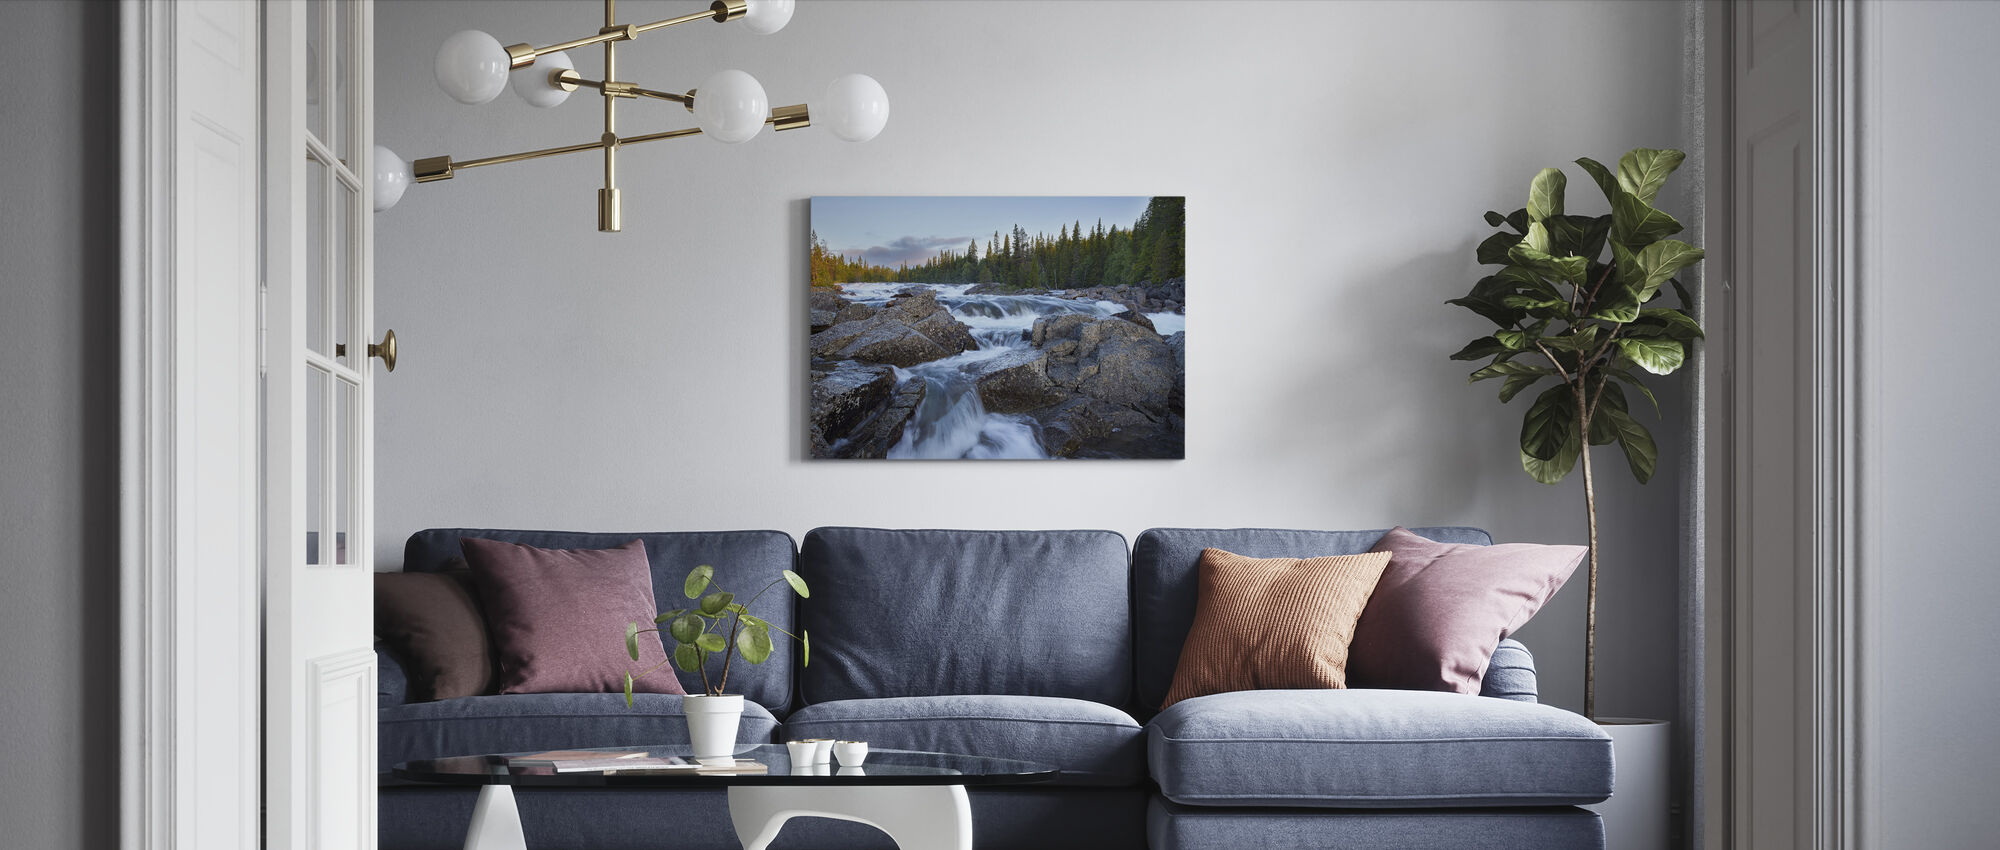 Tännforsen in Jämtland - Canvas print - Living Room